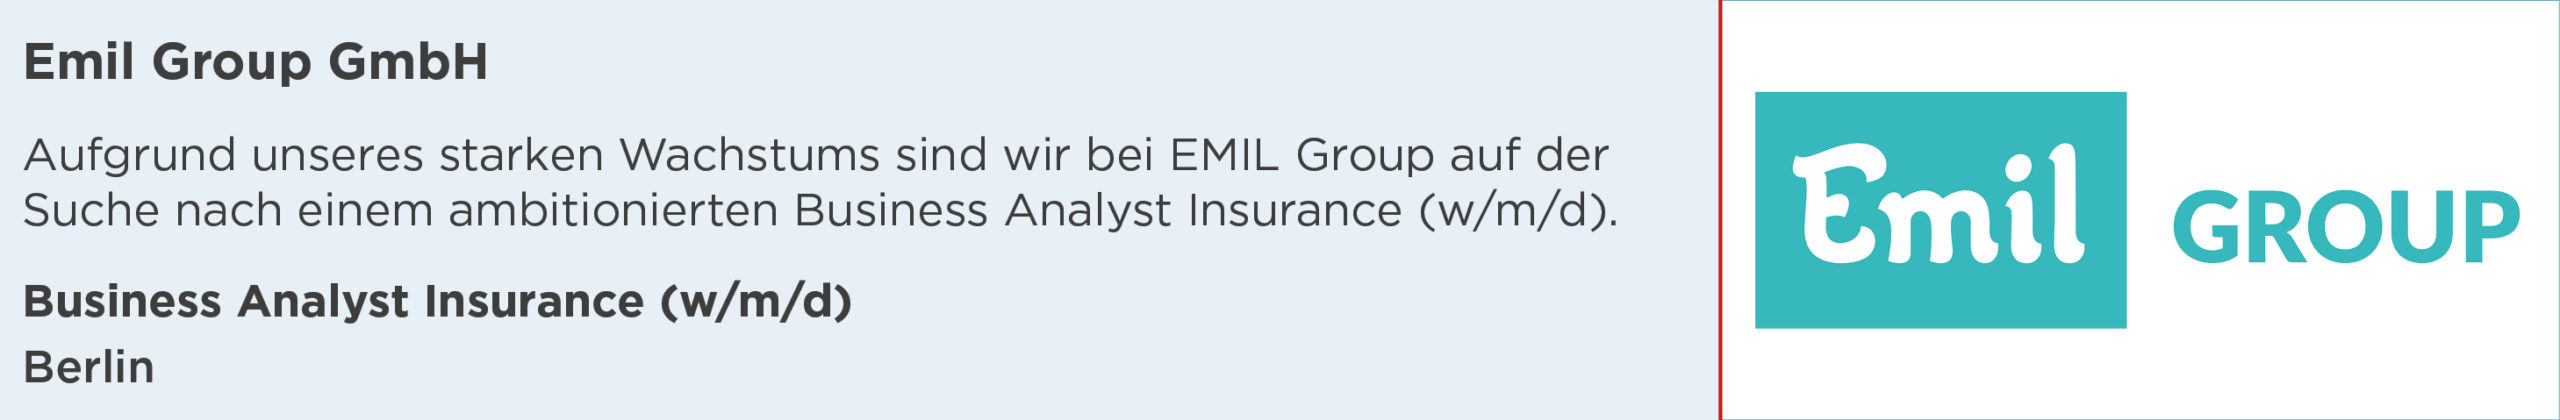 emil group, business analyst insurance, stellenanzeige, berlin